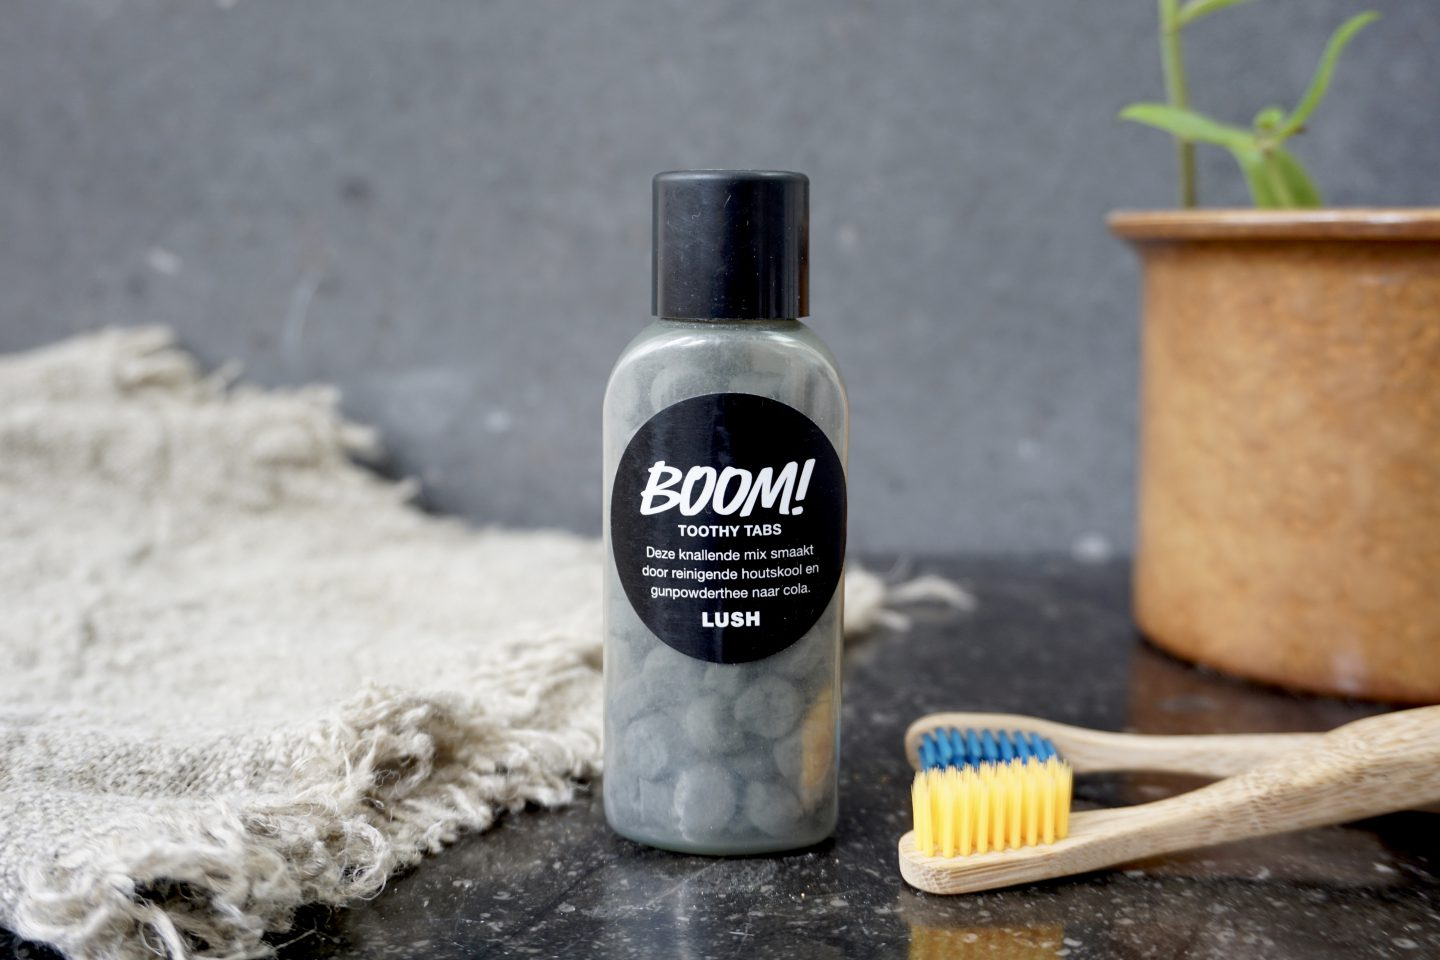 Review Boom! Toothy Tabs Lush